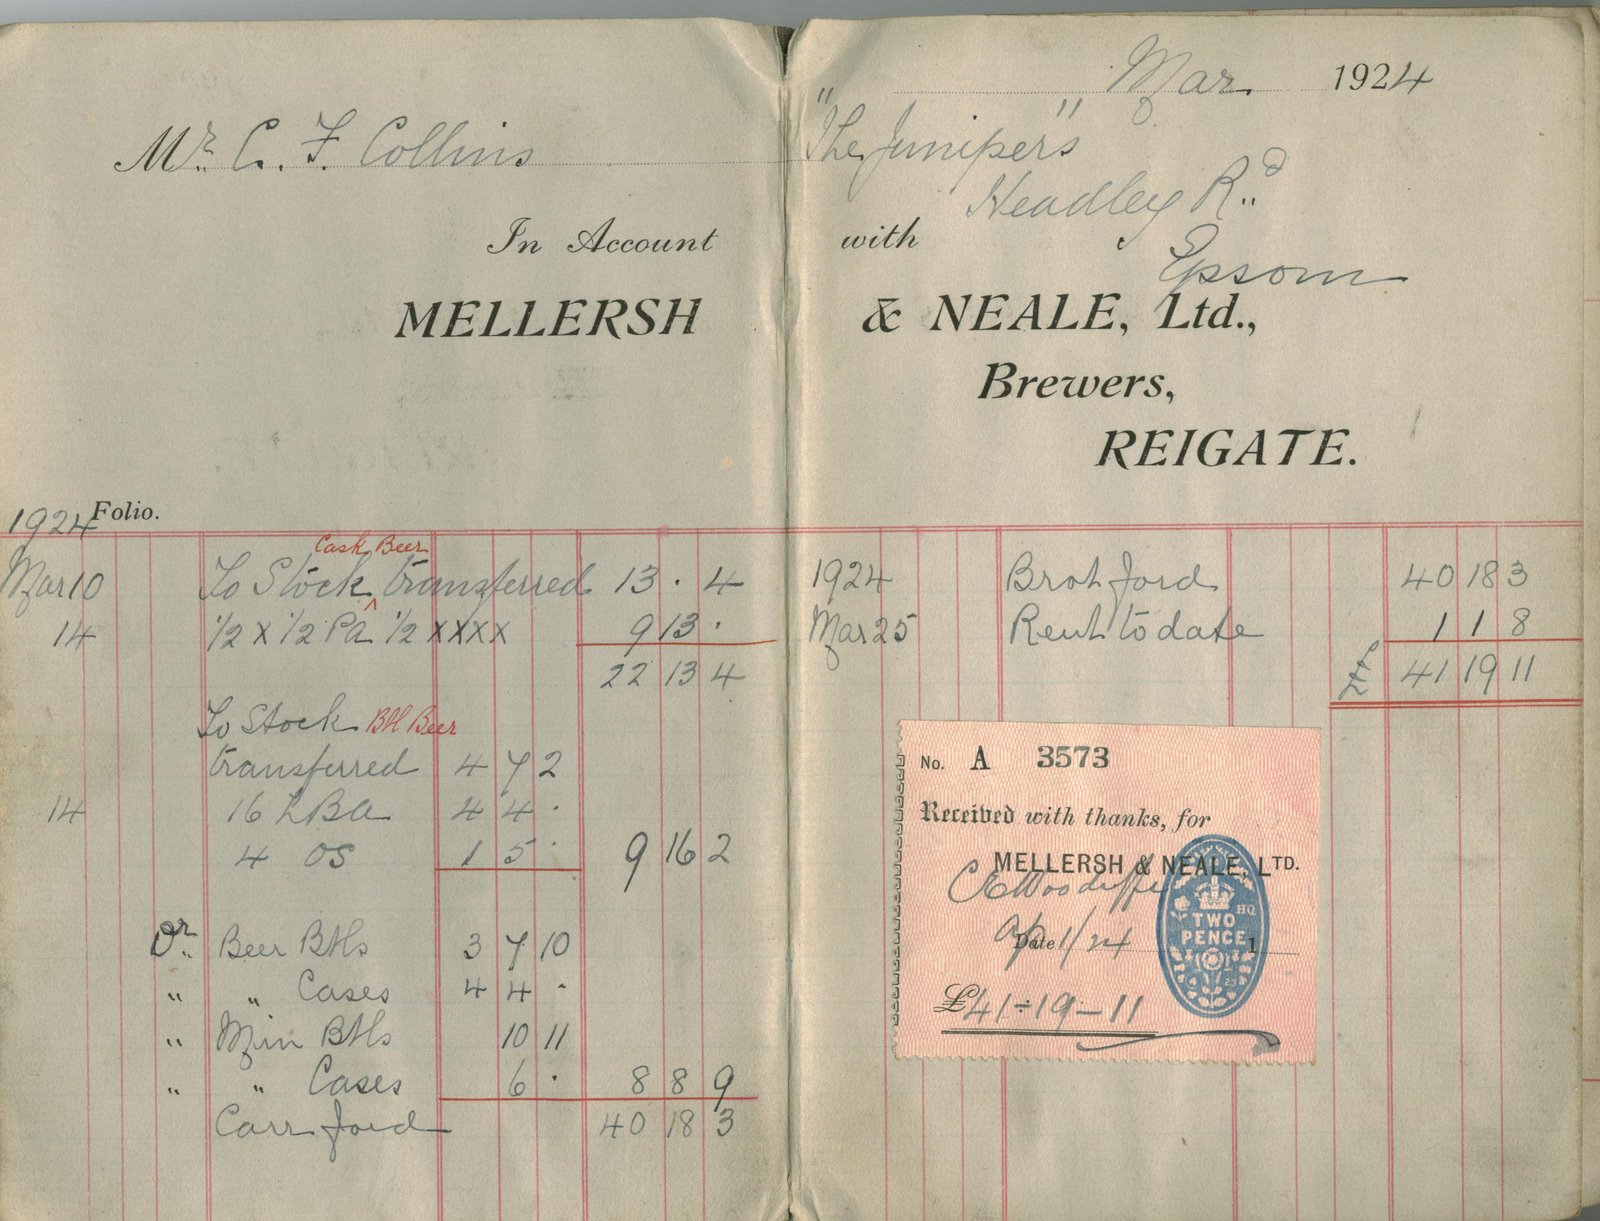 A page from Mellersh & Neale's accounts book 1924